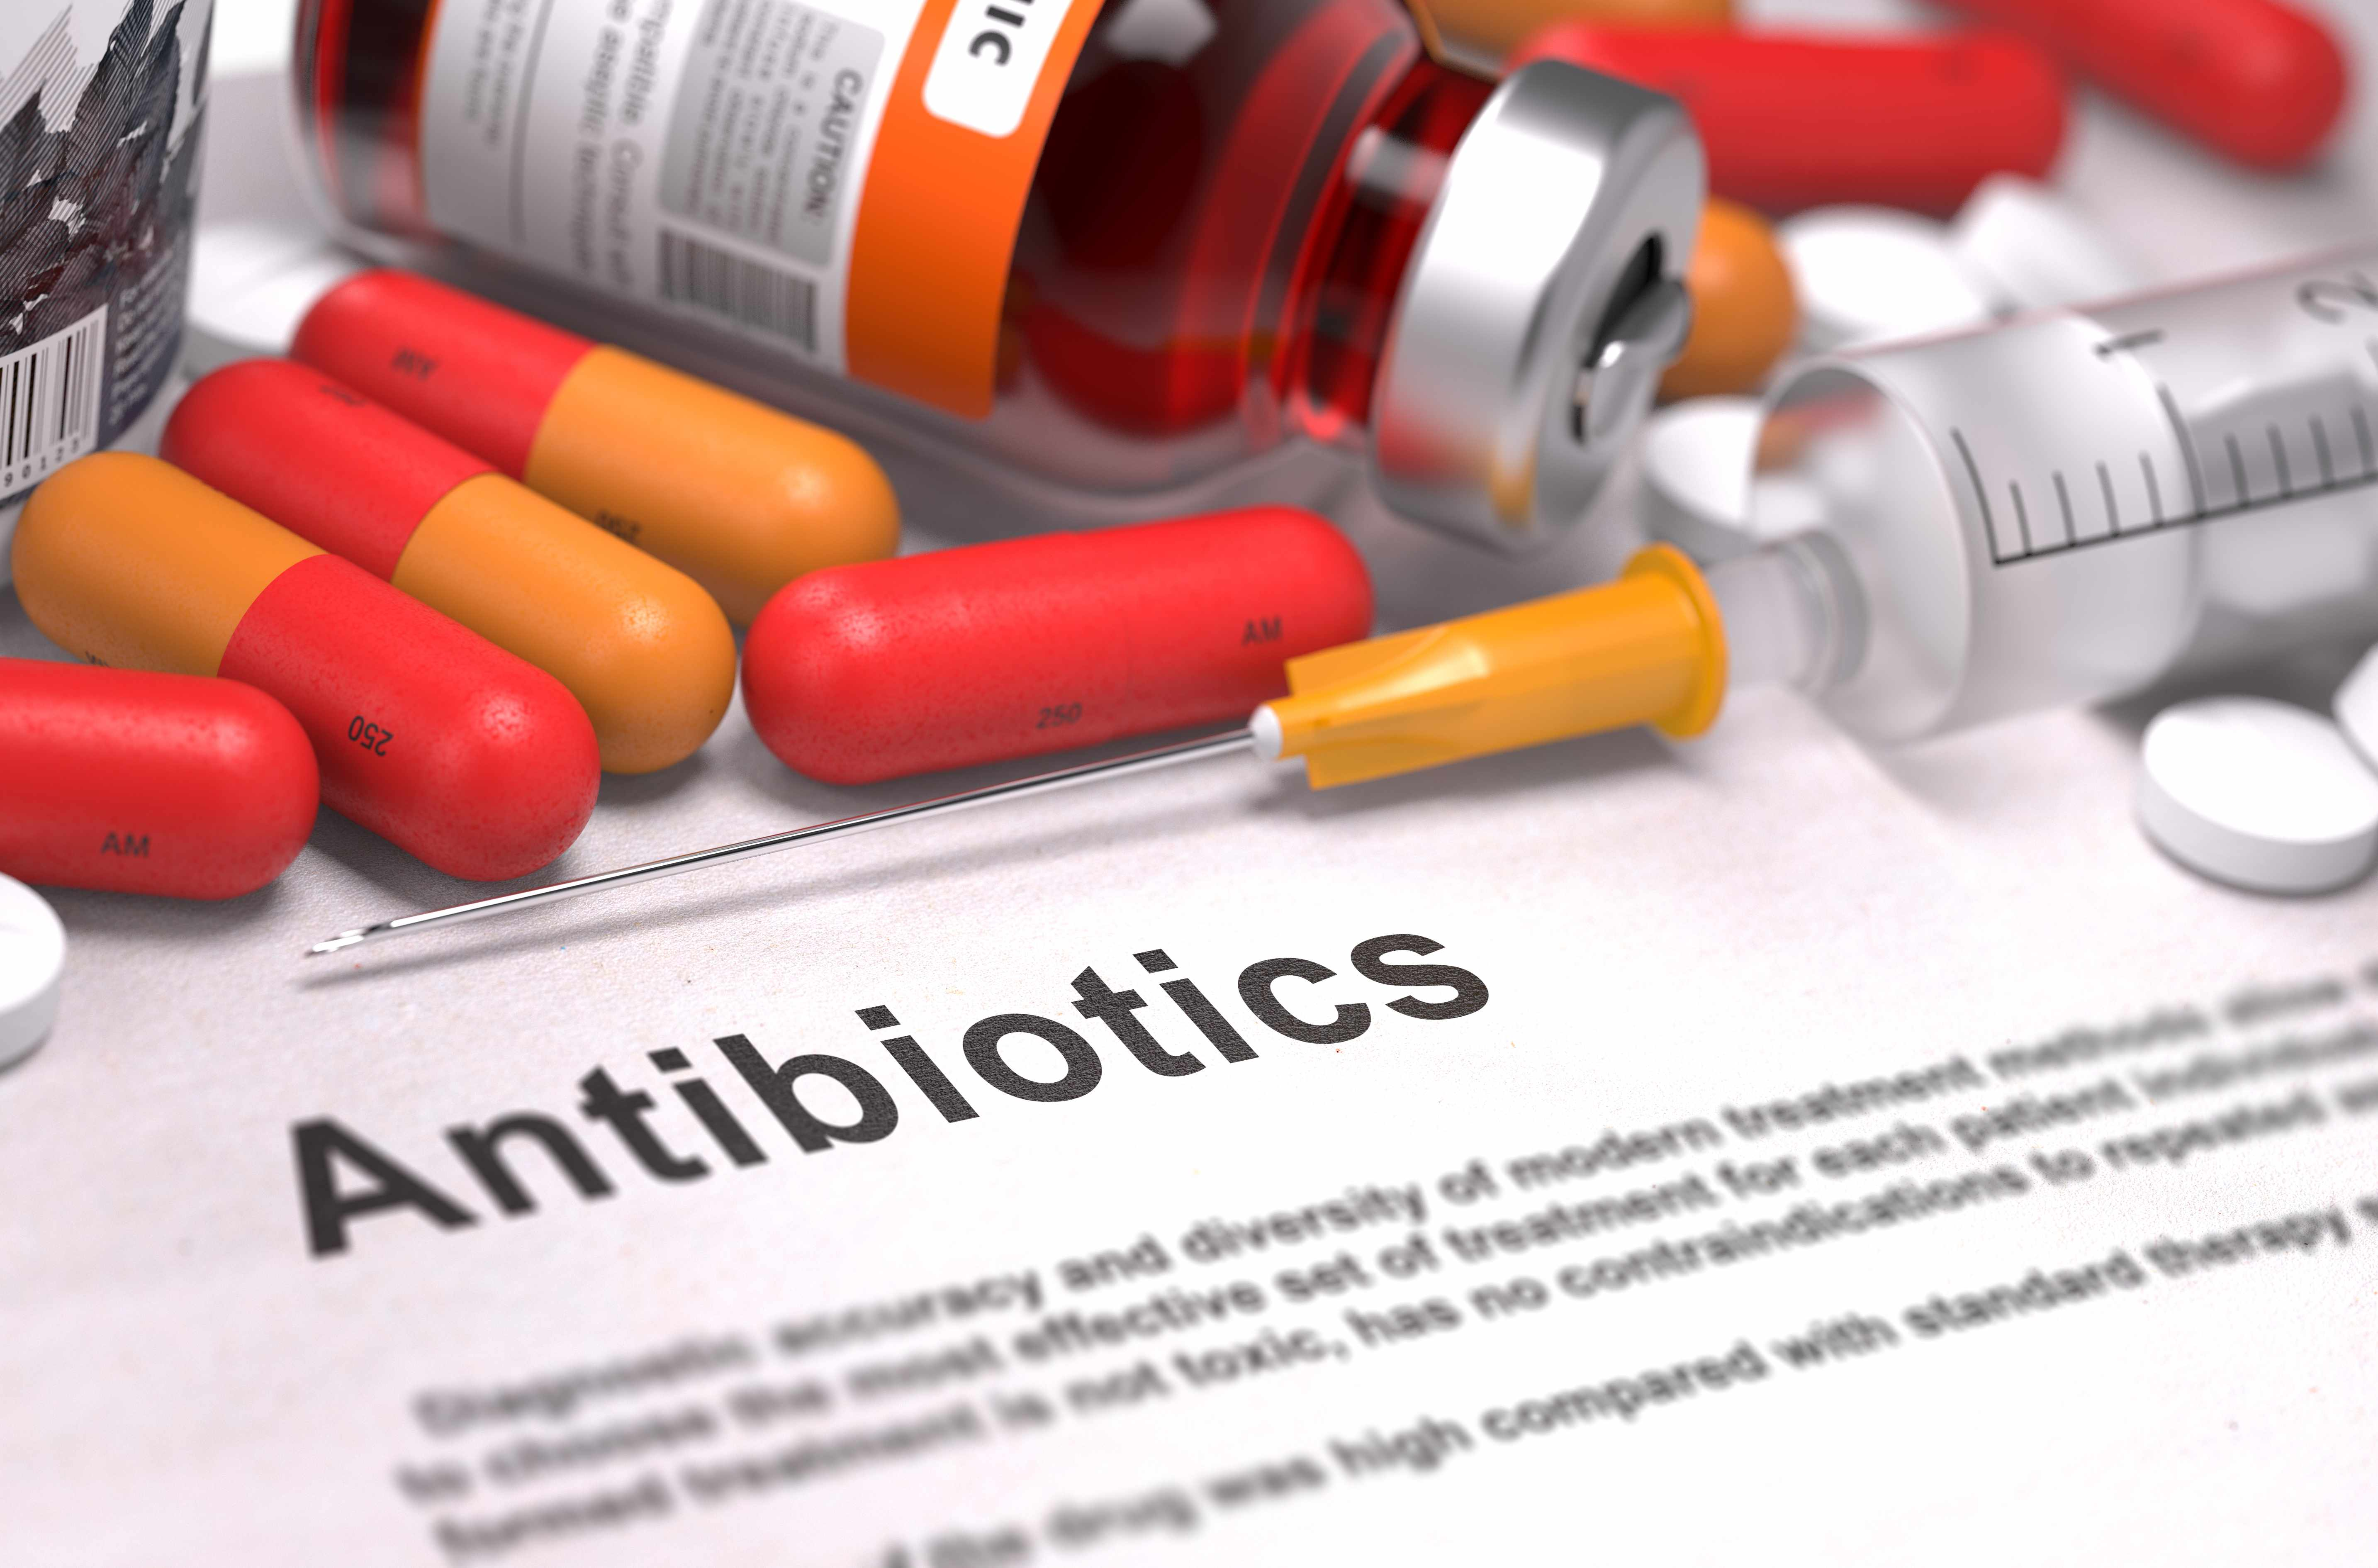 pills, medicine, antibiotic, syringe with the the word antibiotic on a piece of paper